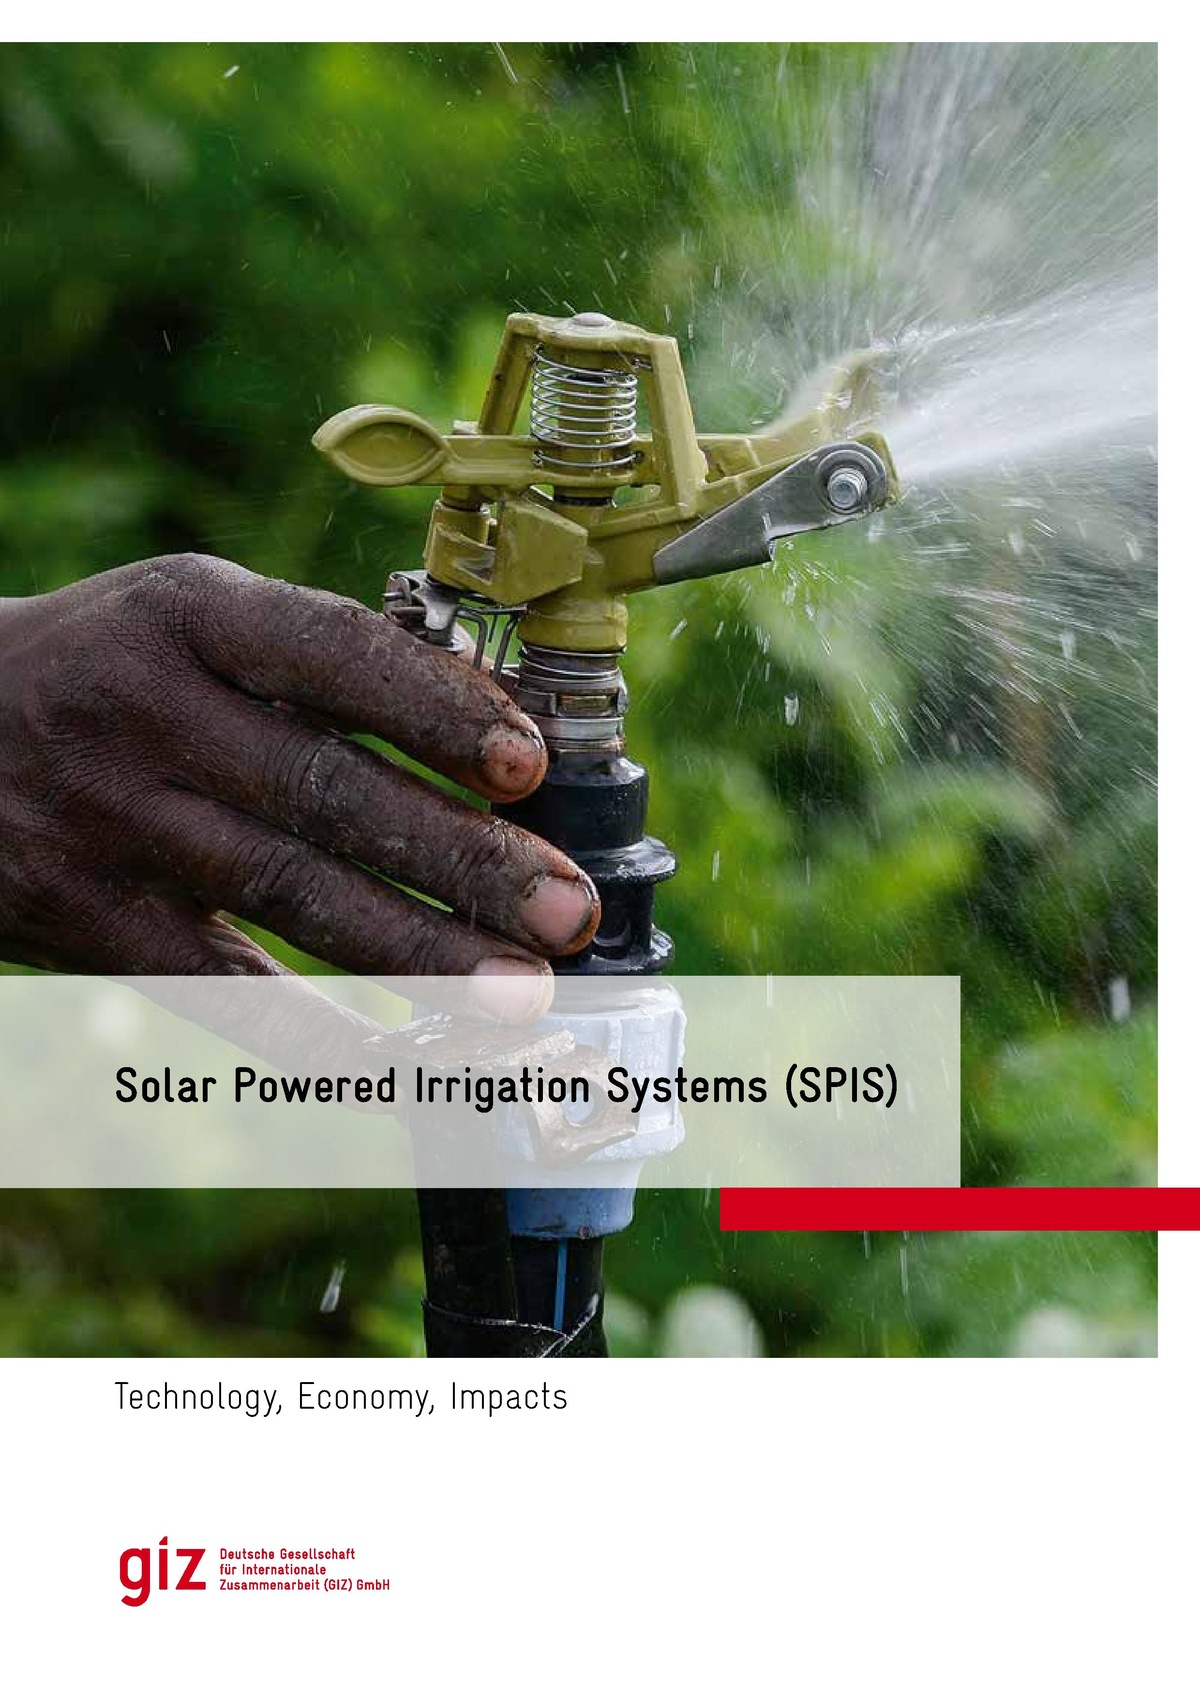 File:Solar Powered Irrigation Systems (SPIS) - Technology, Economy ...